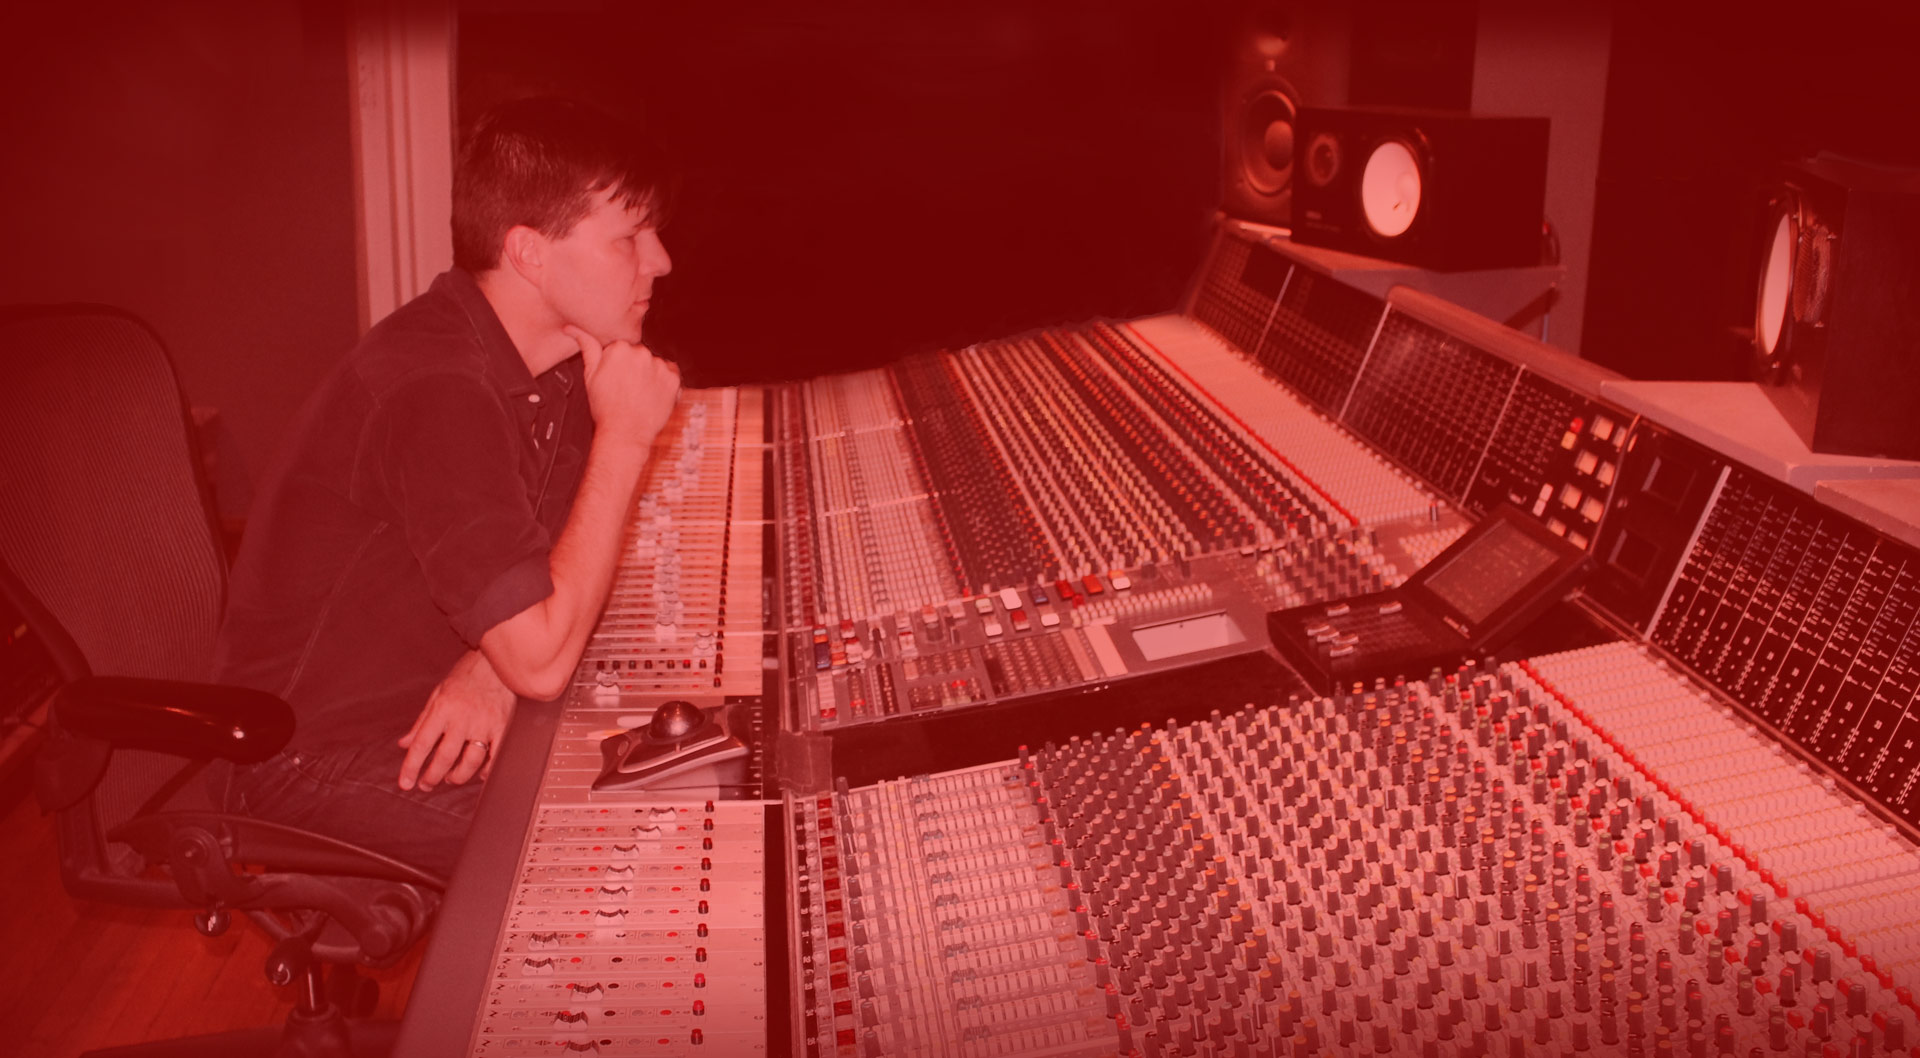 Zac Maloy mixing in the studio.